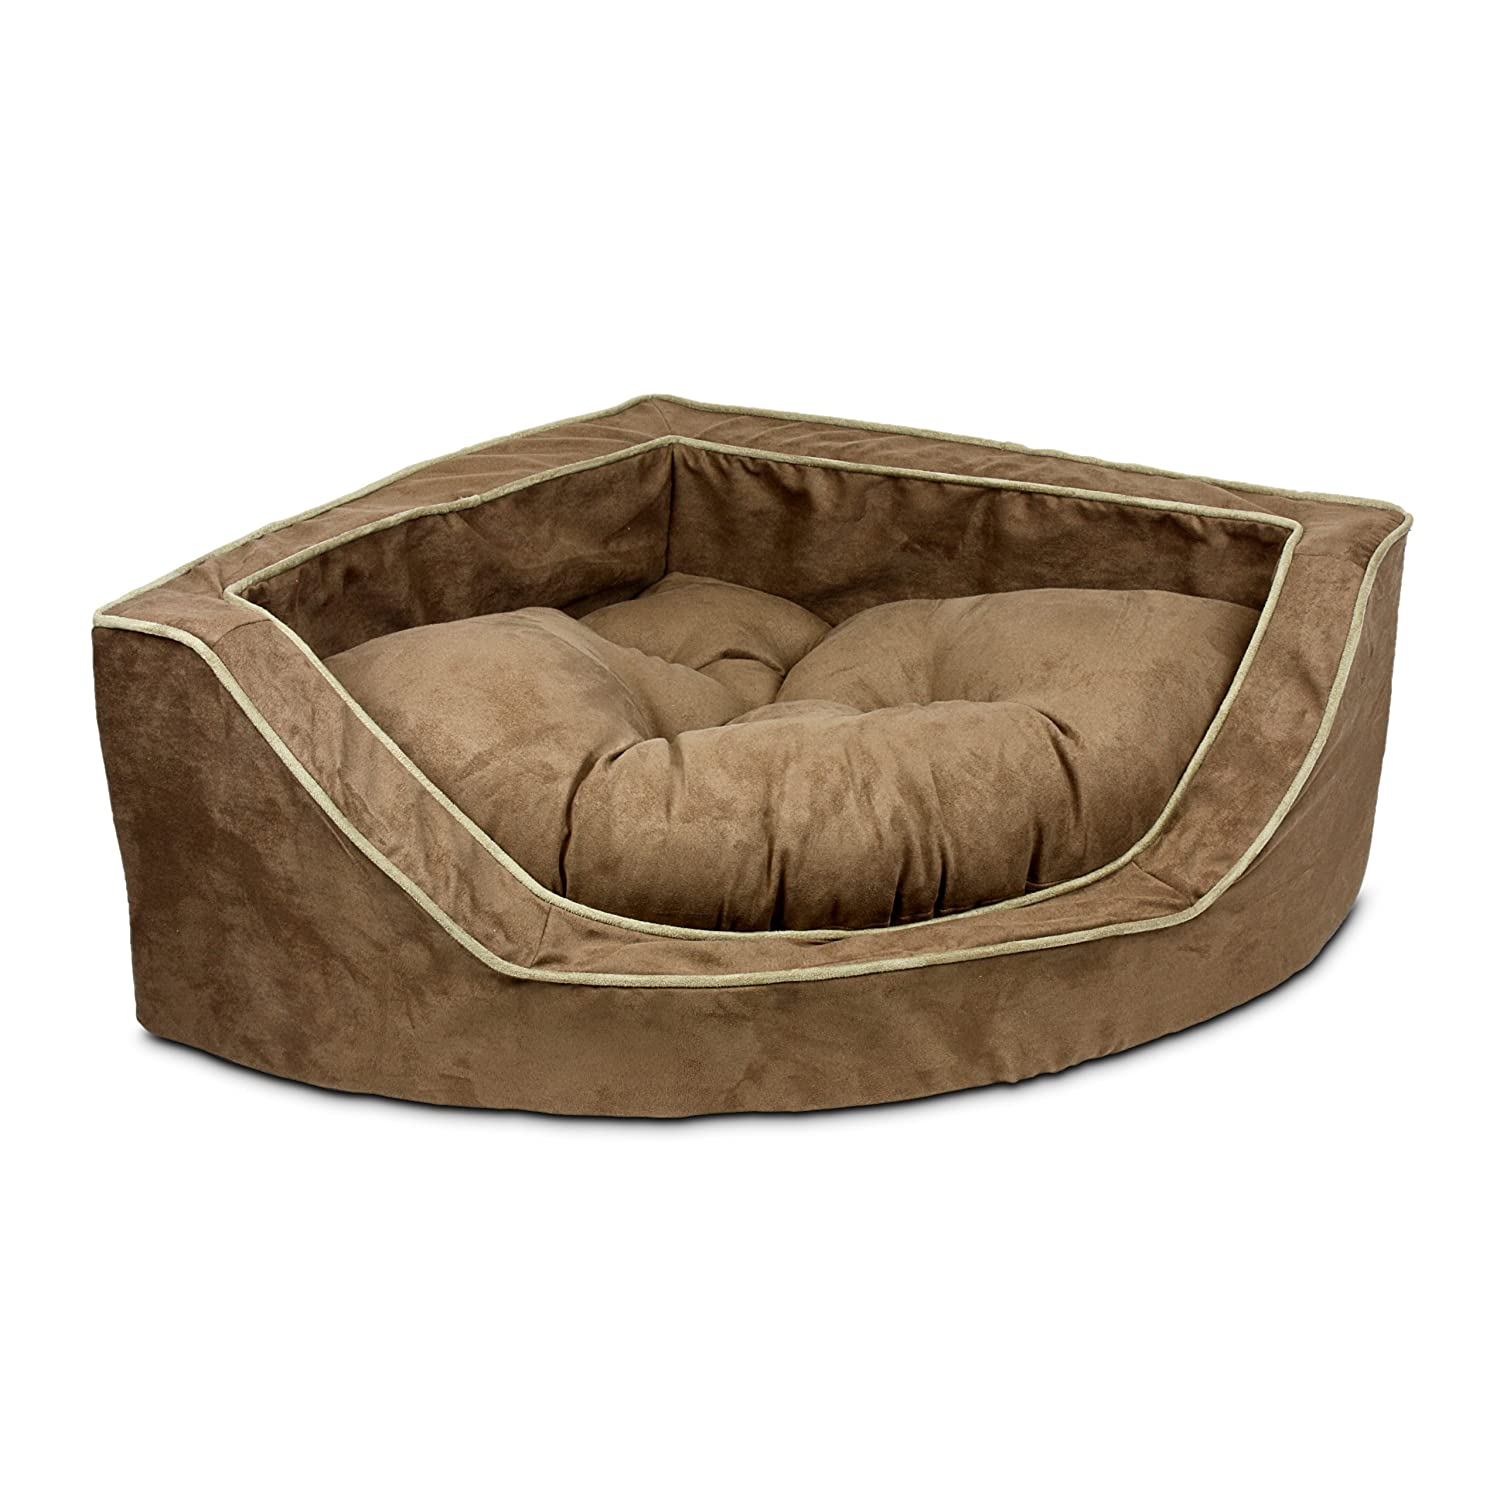 Snoozer Dog Bed How To Wash It